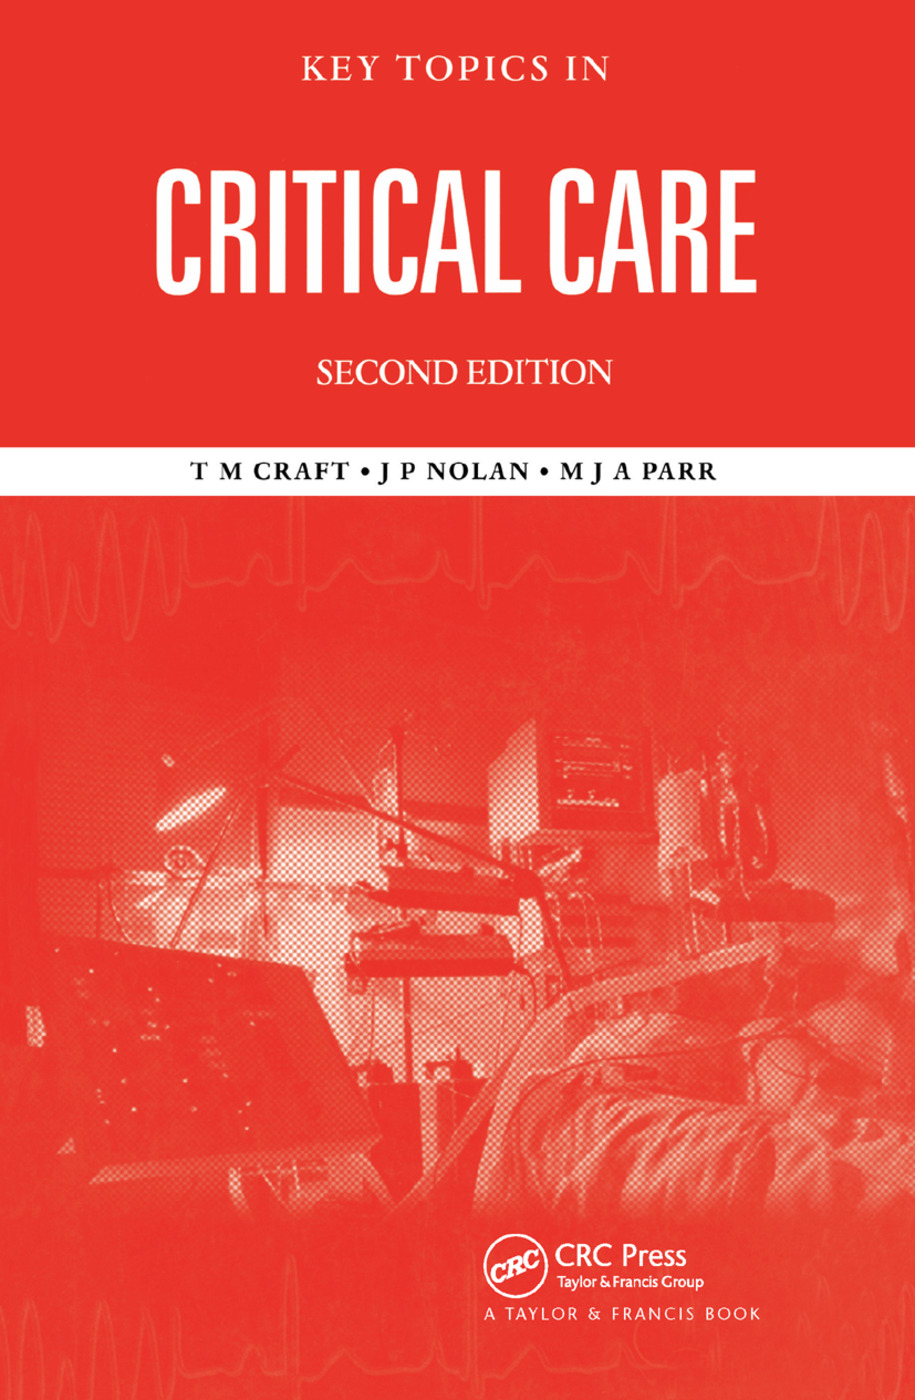 Key Topics in Critical Care, Second Edition: 2nd Edition (Paperback) book cover